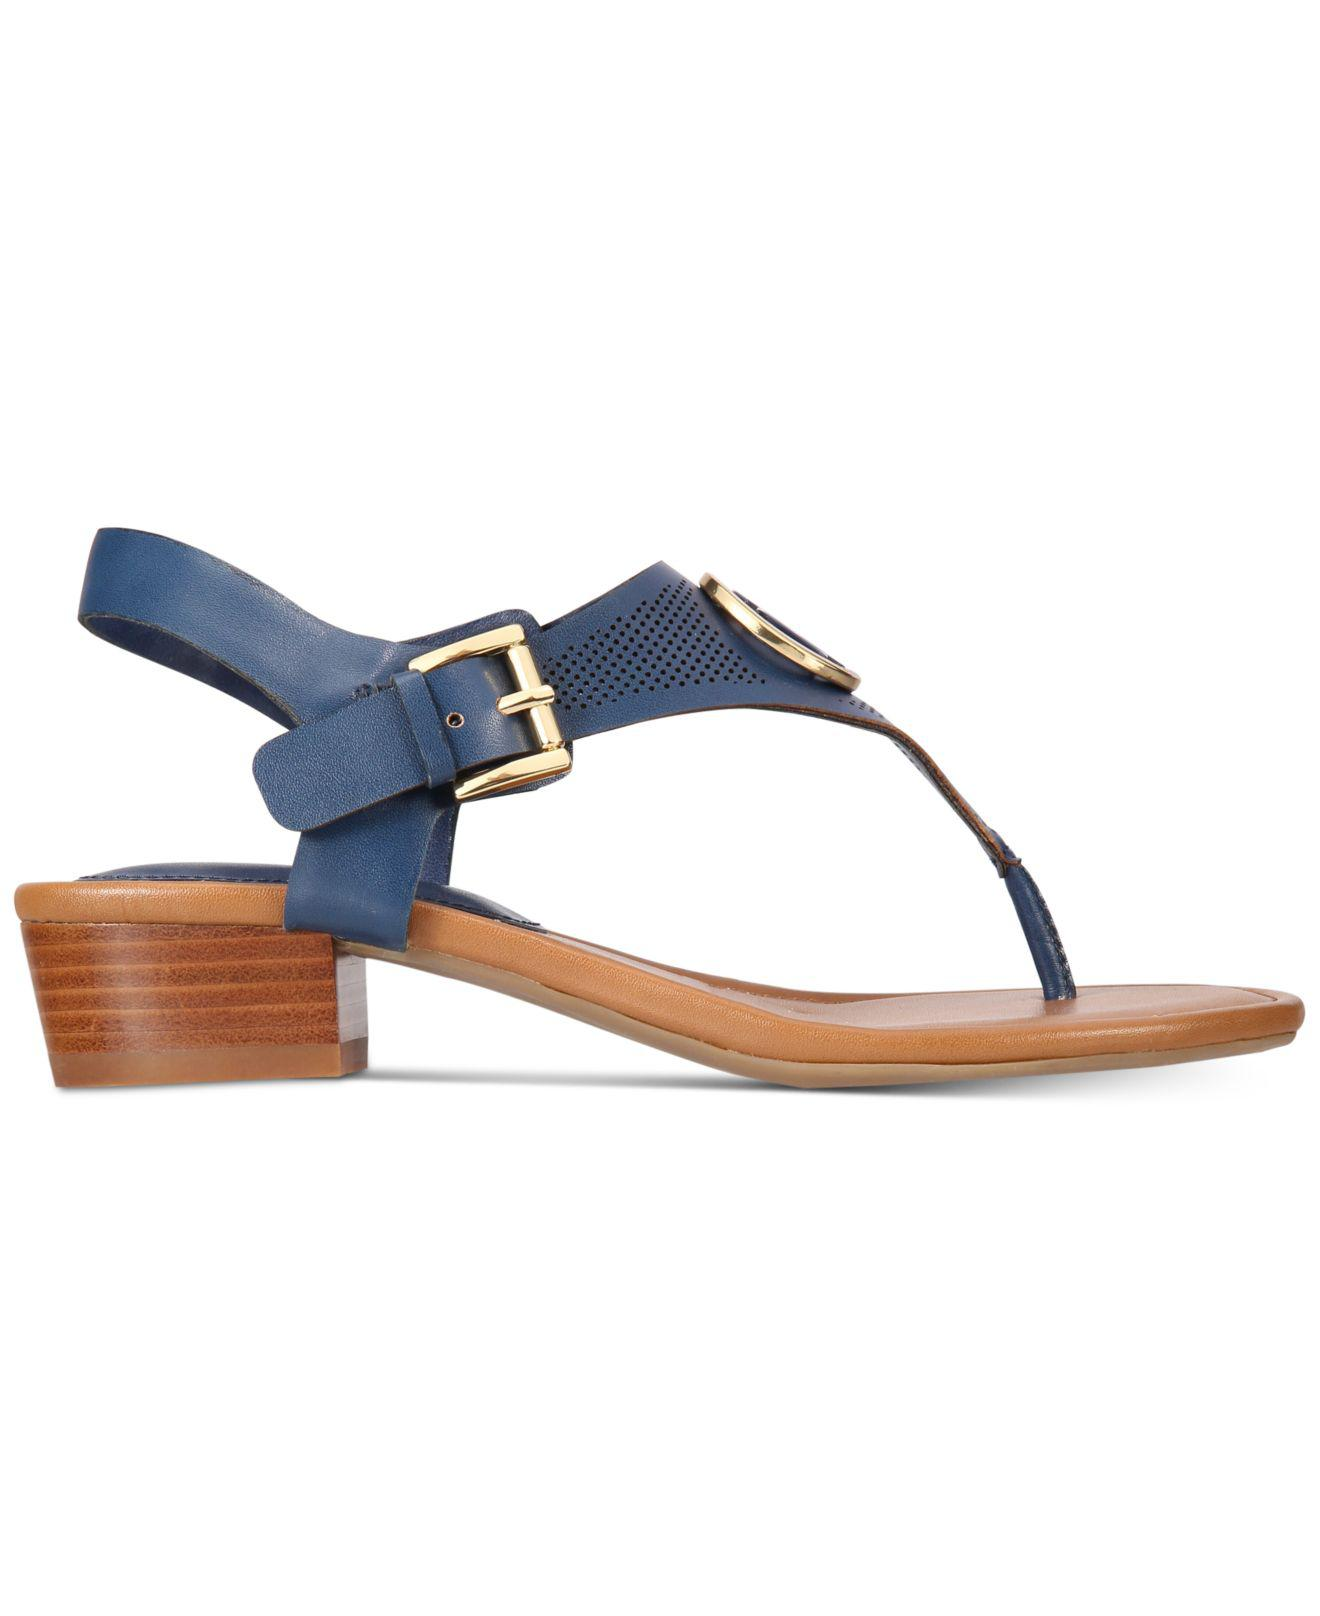 0c1f16d3576c9 Lyst - Tommy Hilfiger Kandes Block-heel Thong Sandals in Blue